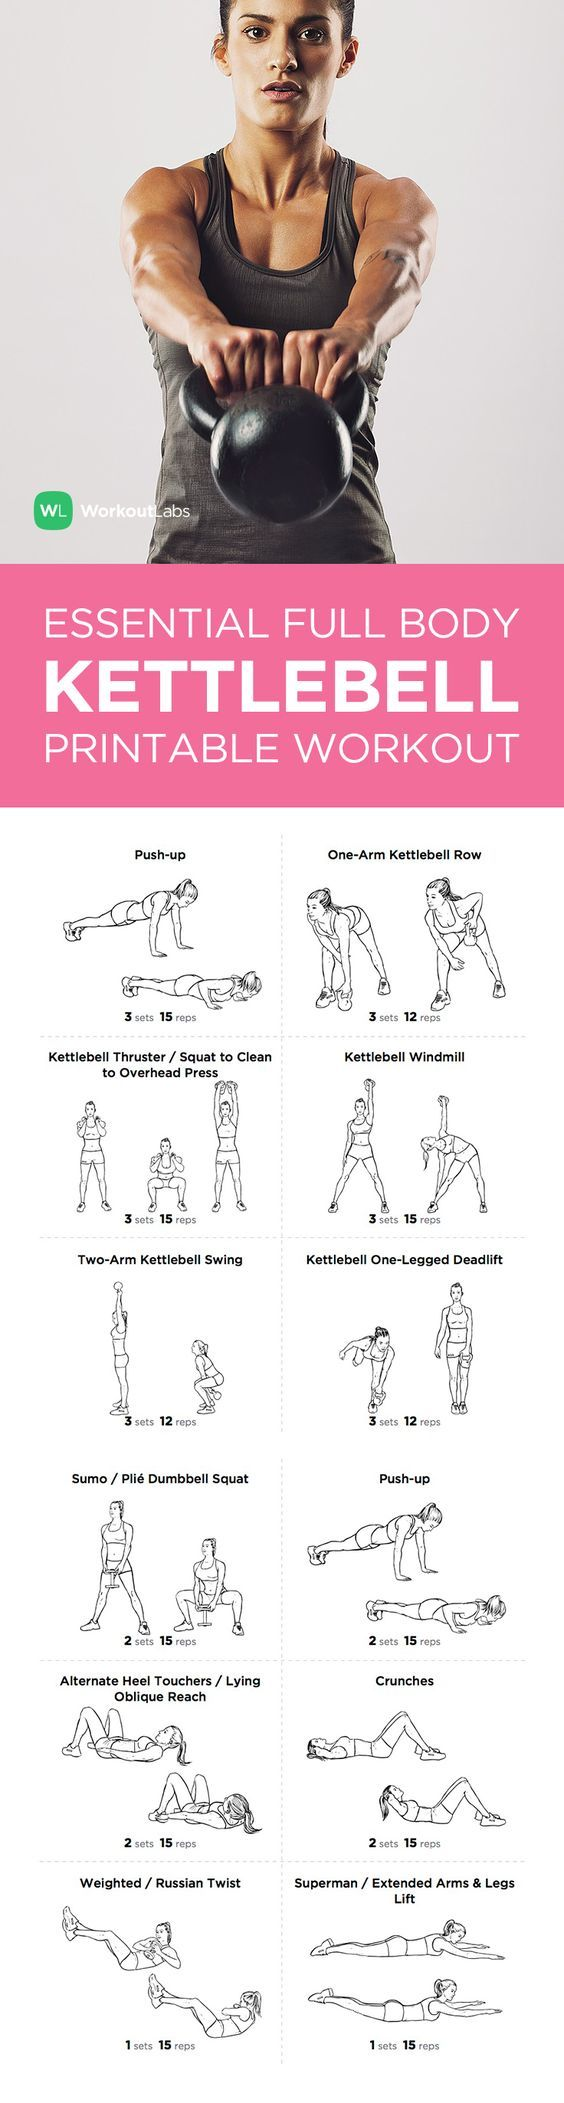 According to BodyBuilding.com, kettlebell exercises are compound, which means they use many muscle groups to achieve a movement. This is why using a kettlebell is so effective! You're able to work out your whole body in half the time. Keep reading to find